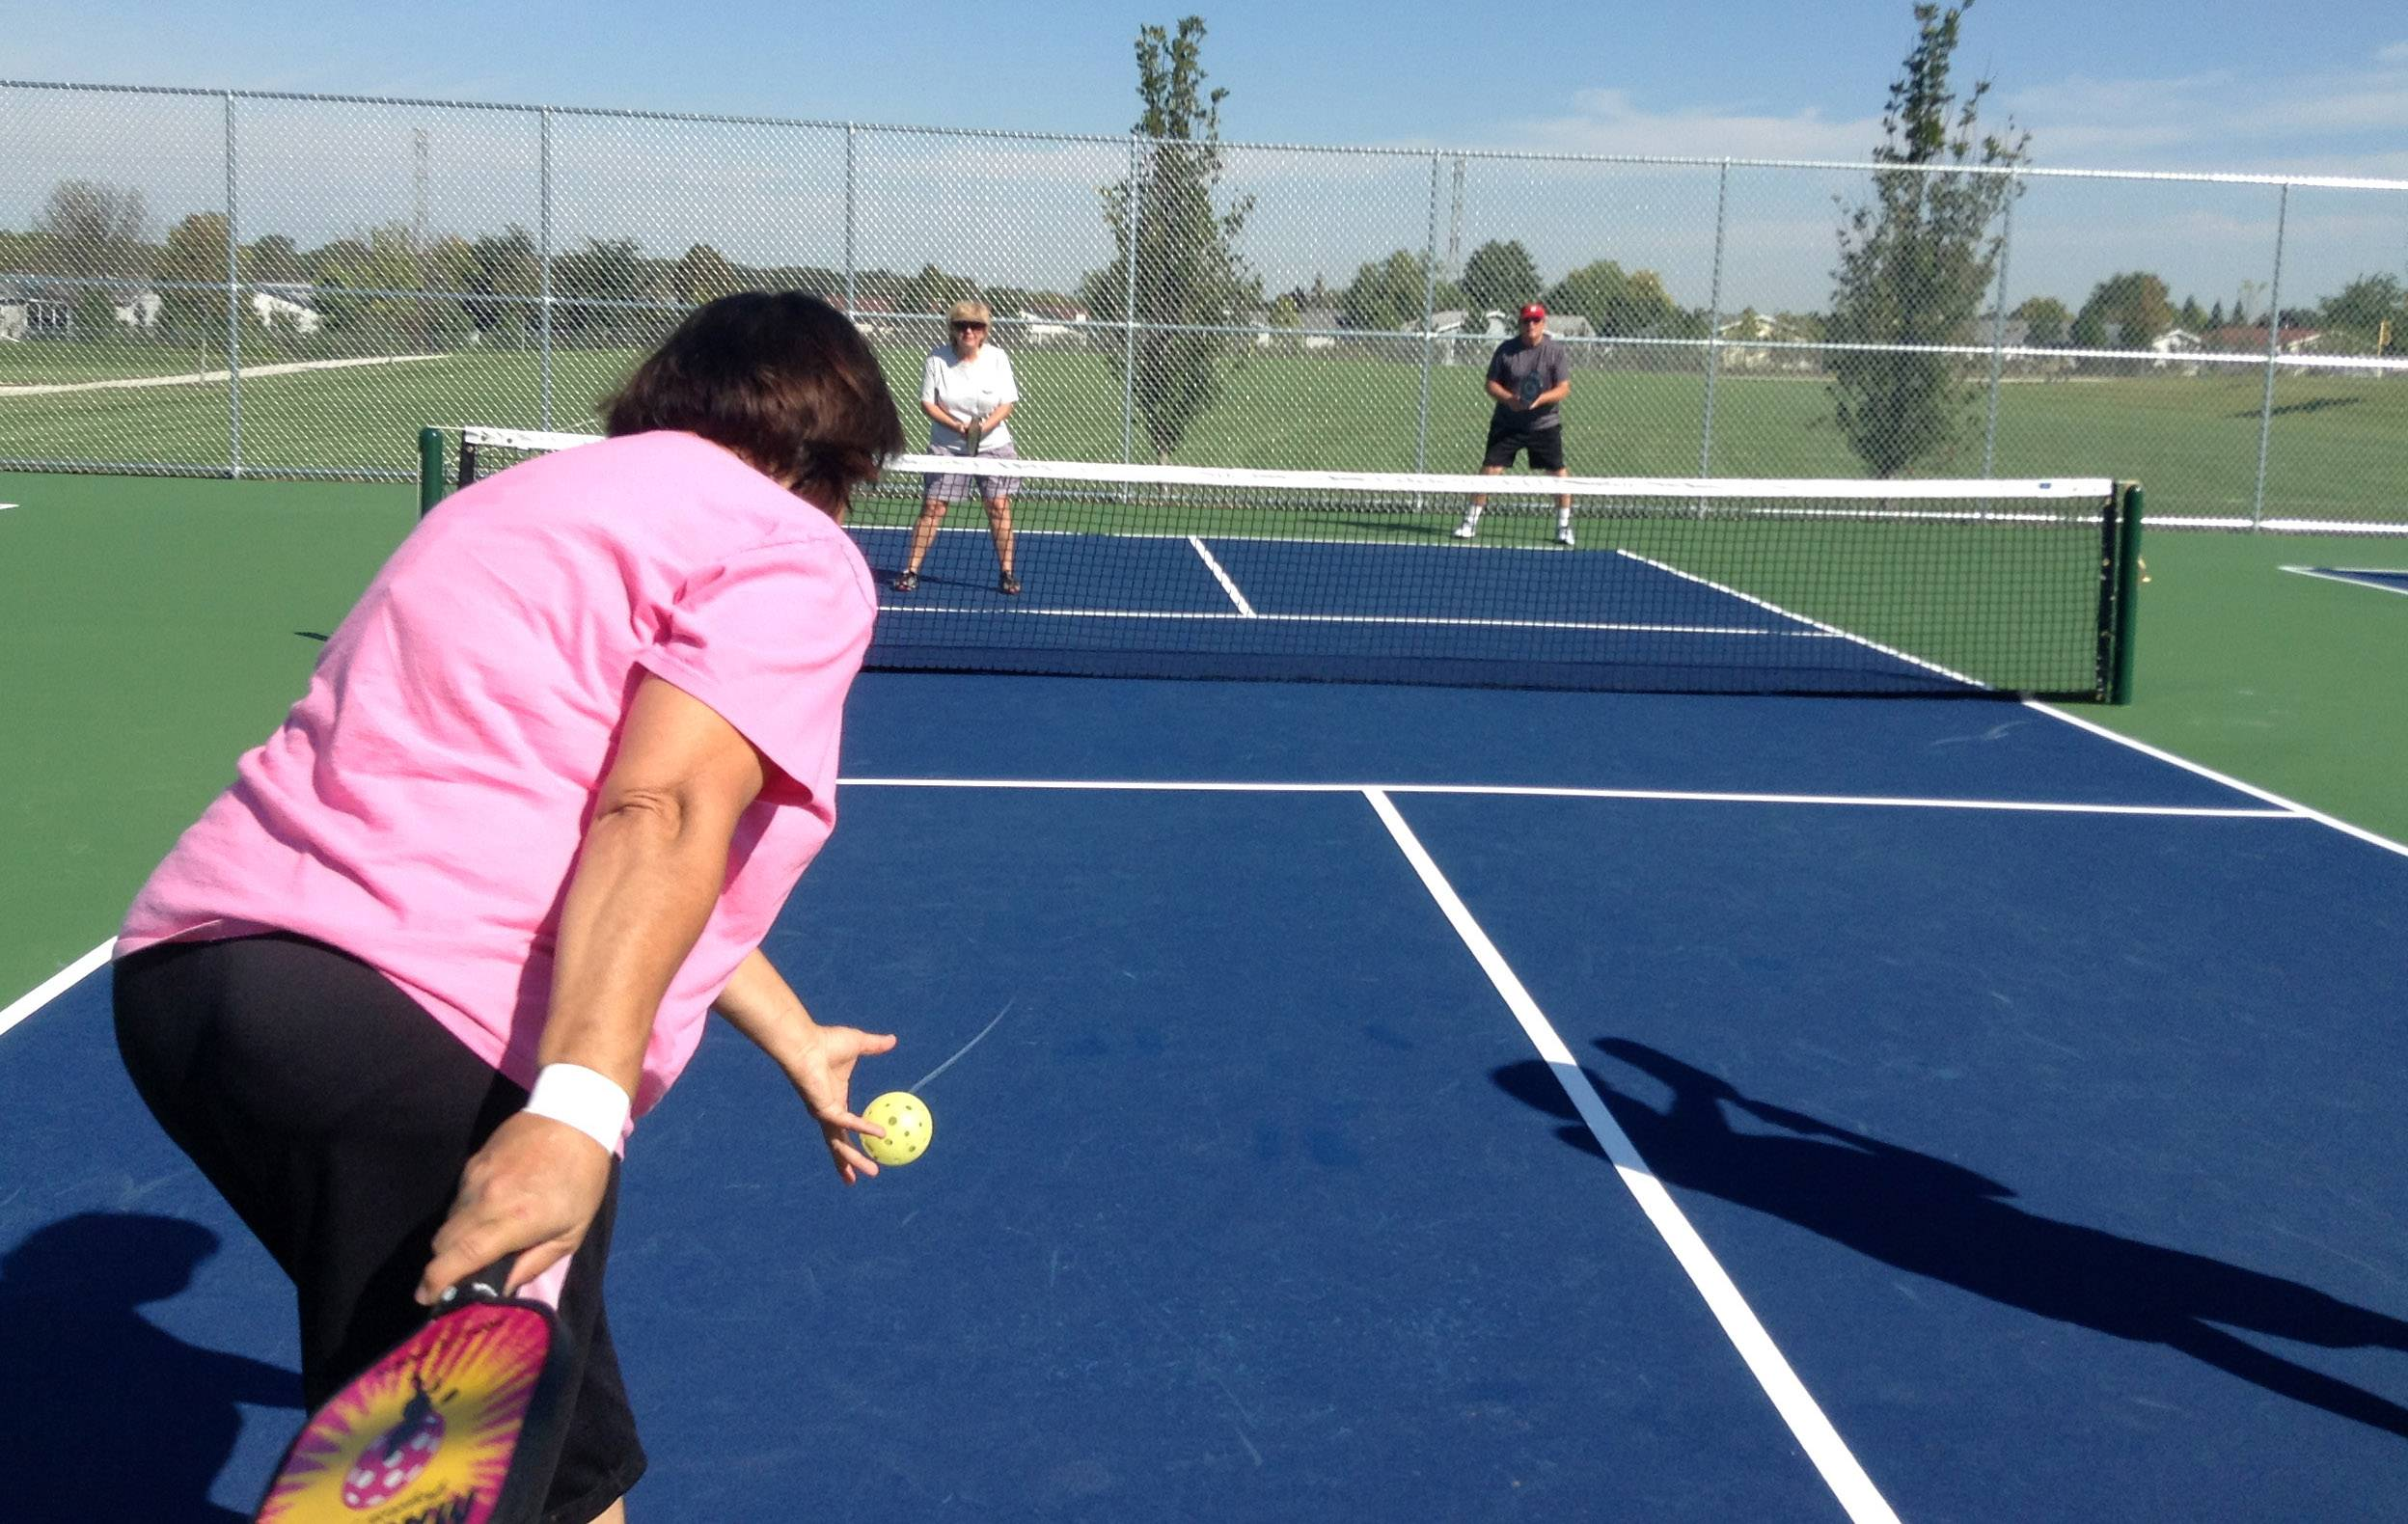 Outdoor pickleball courts debuted in September 2015 at Behm Homestead Park in Fremont Township. Since then, 78 additional pickleball facilities have opened in Illinois.